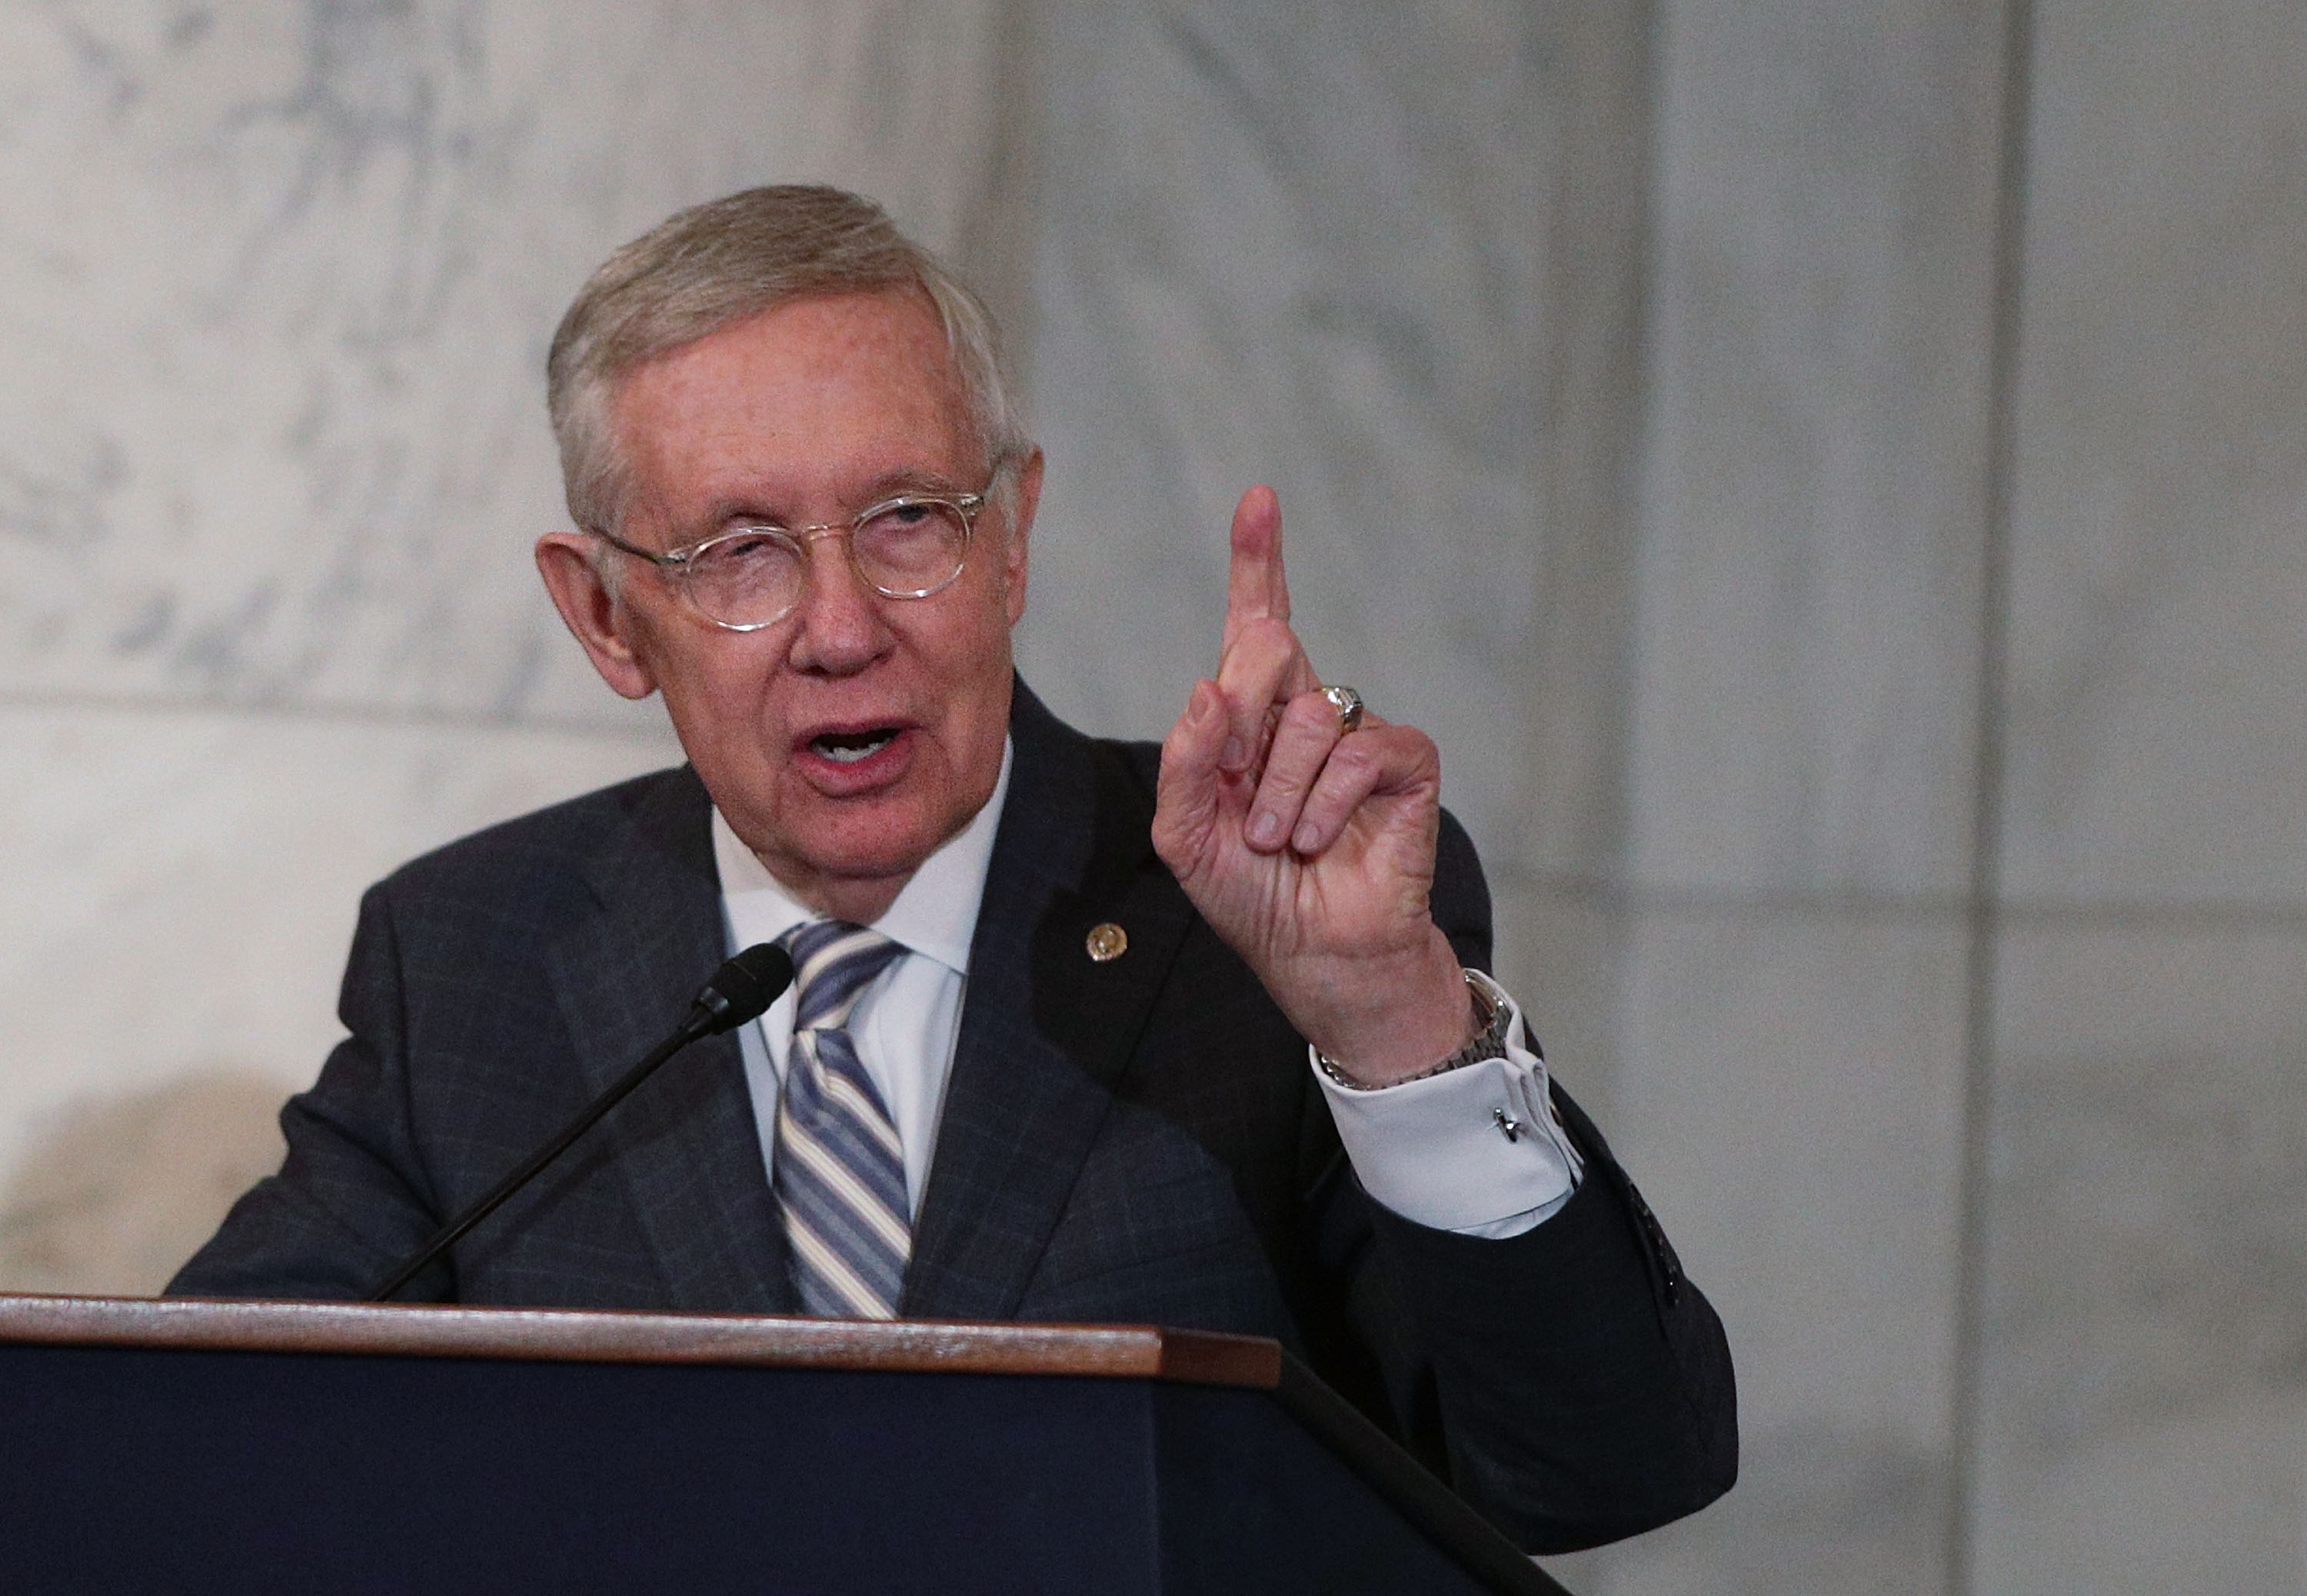 Then-U.S. Senate Minority Leader Sen. Harry Reid (D-NV) speaks during his leadership portrait unveiling ceremony December 8, 2016 on Capitol Hill in Washington, DC.